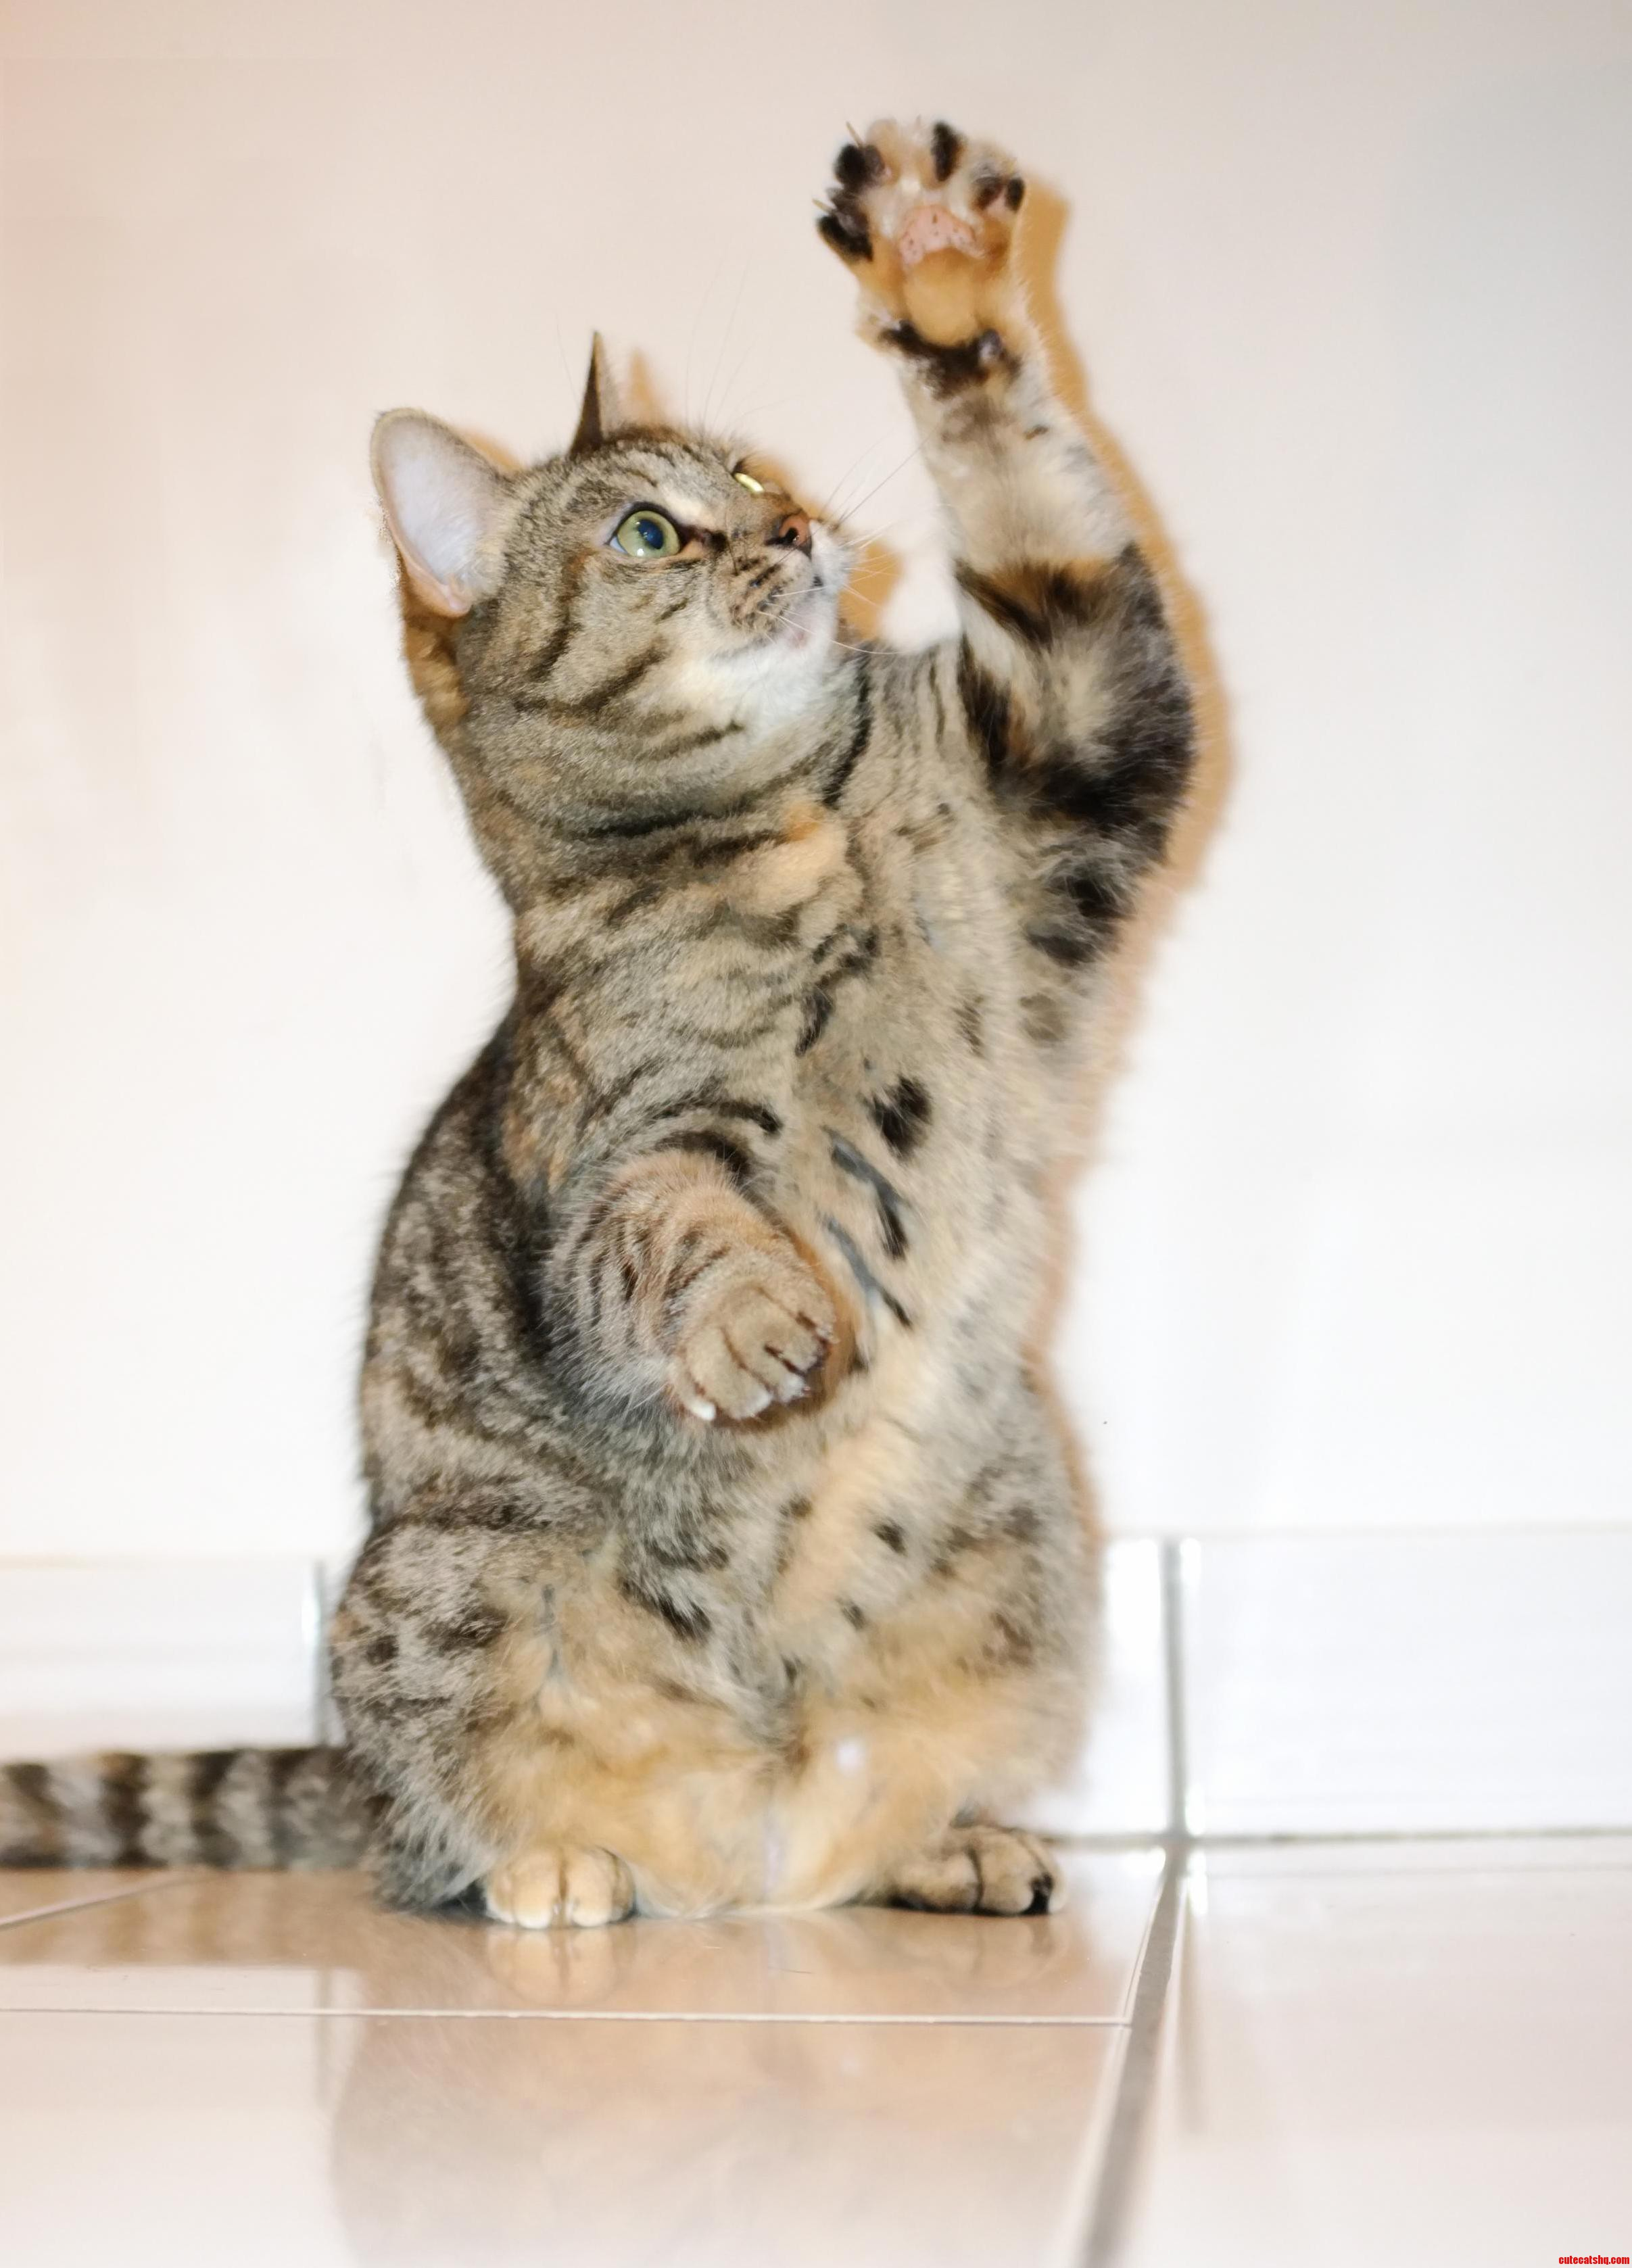 My Cat Leela Attempting To Grab A Toy